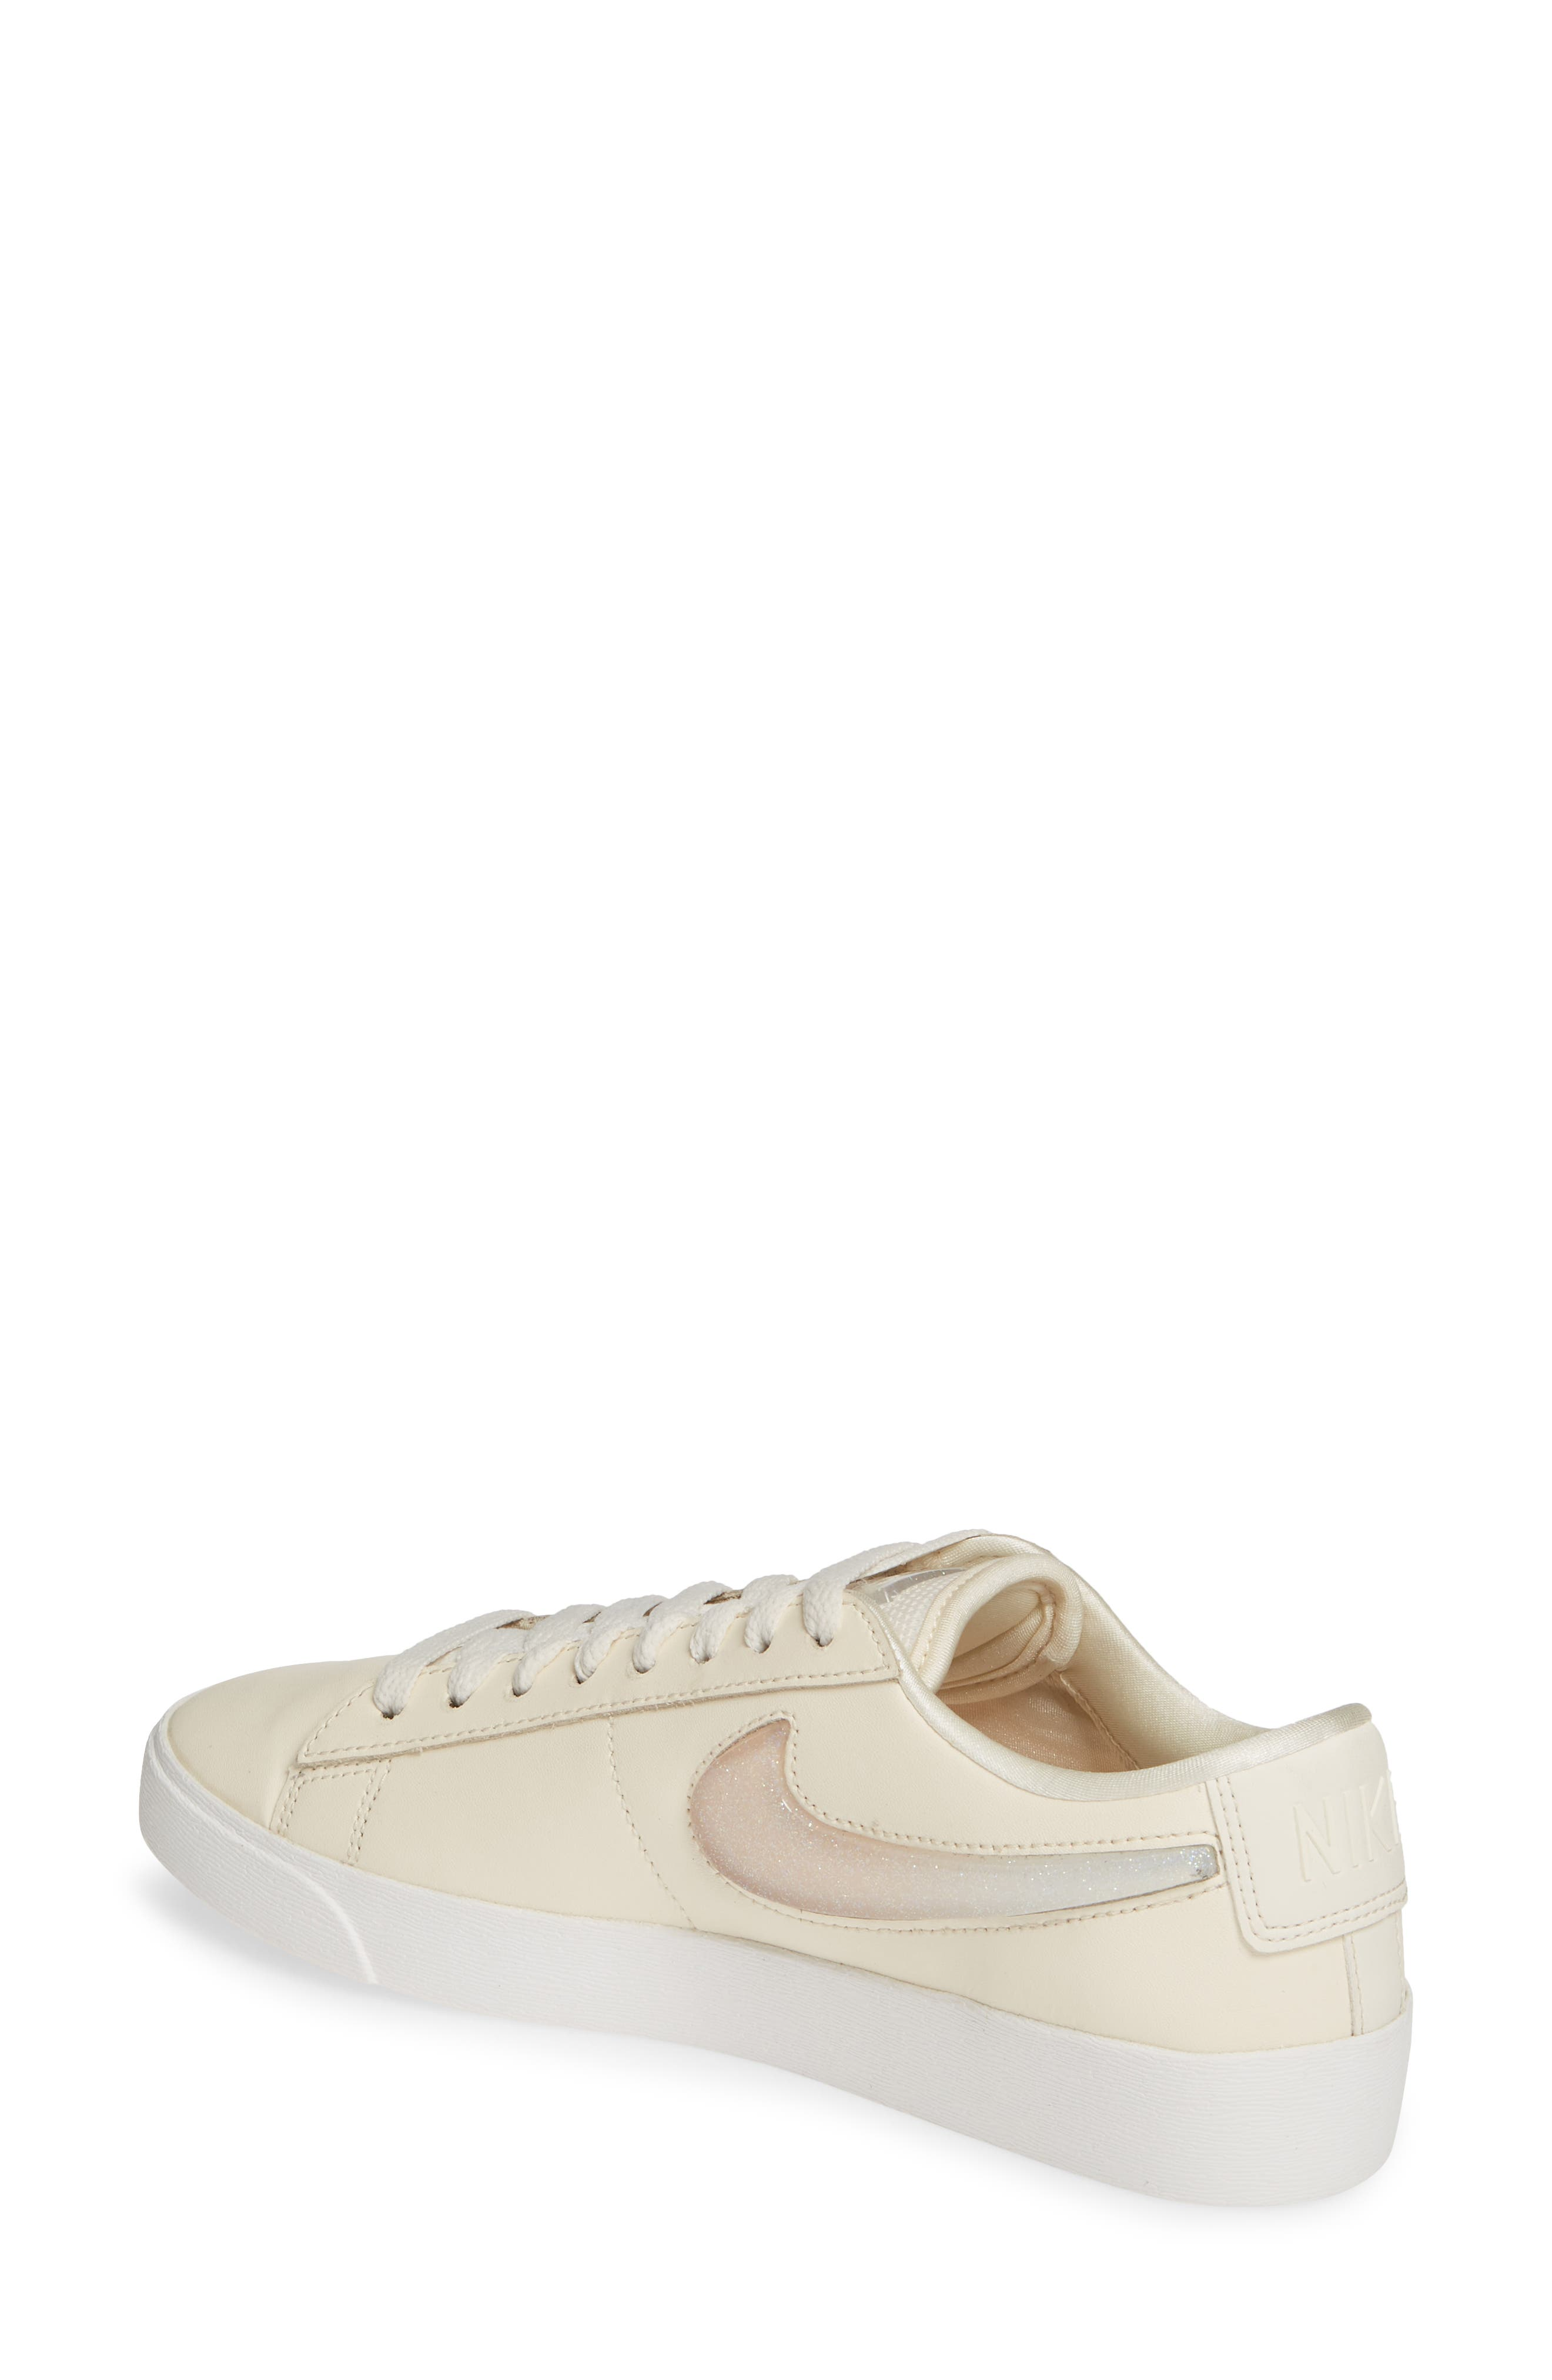 ,                             Blazer Low LX Sneaker,                             Alternate thumbnail 2, color,                             PALE IVORY/ GUAVA ICE/ WHITE